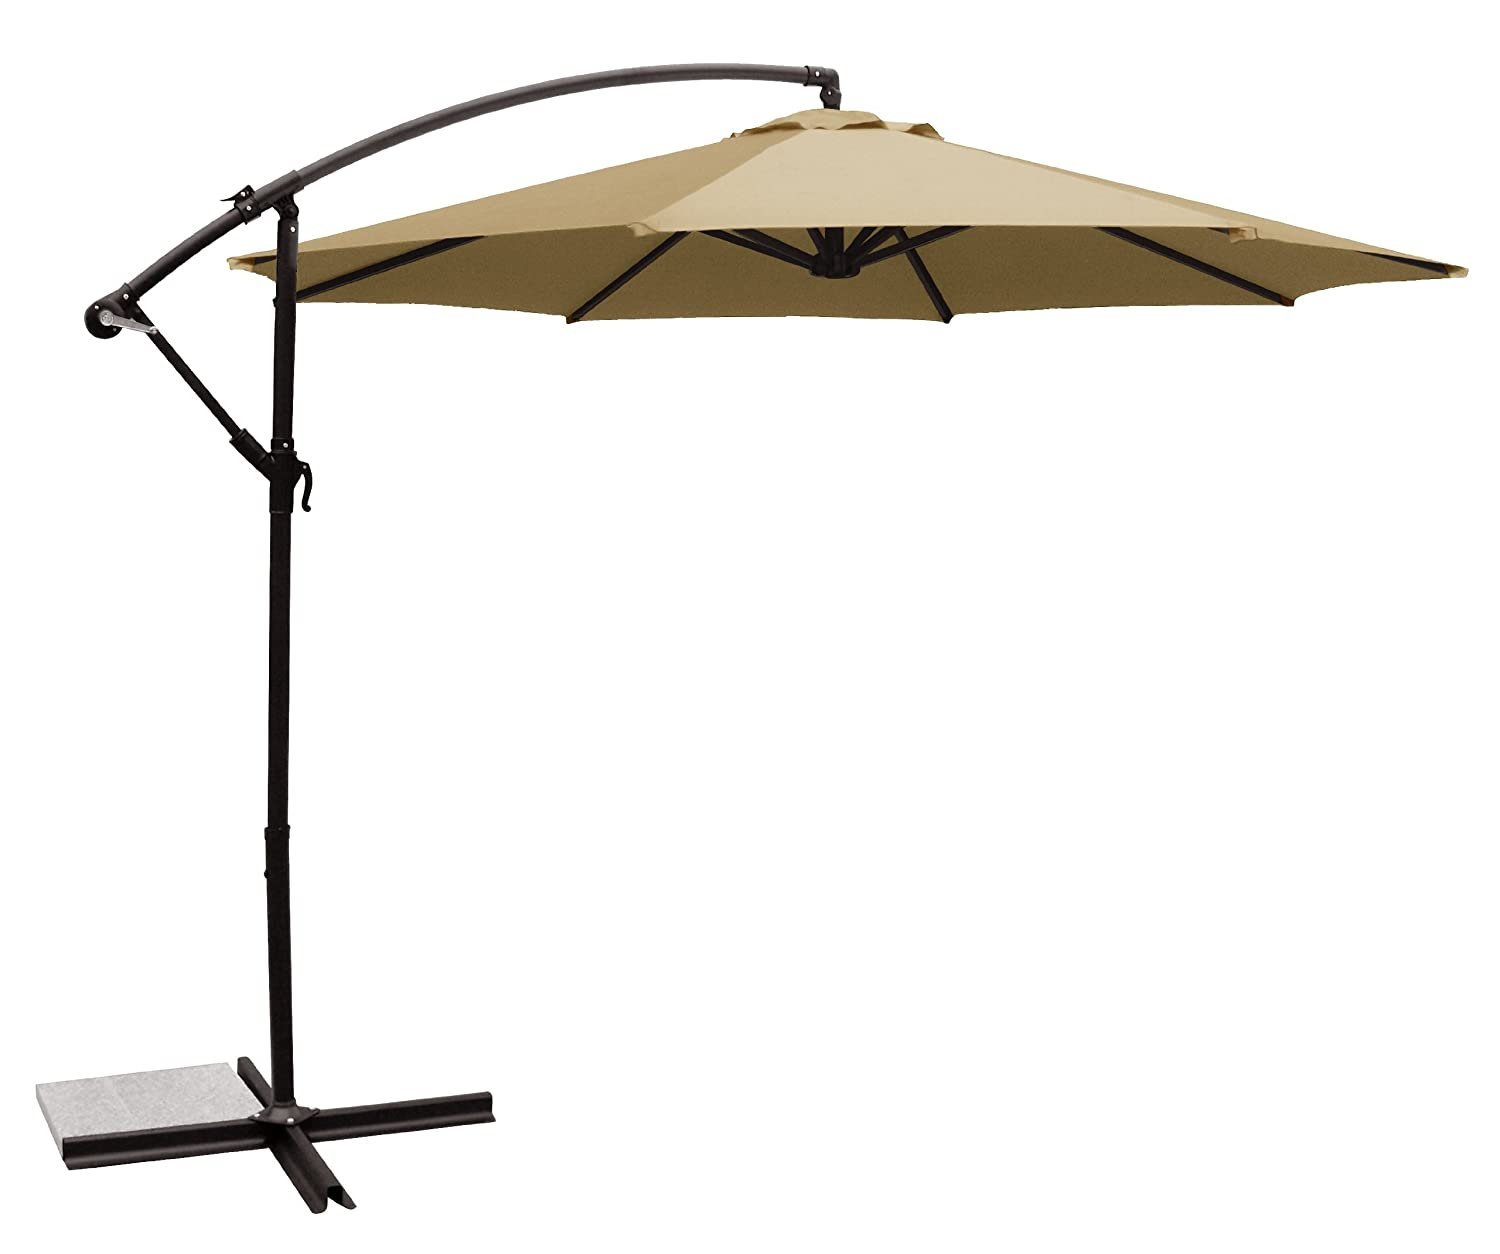 superior picture the square umbrella amazing and offset to patio outdoor how ideas umbrellas top design choose best bright unique